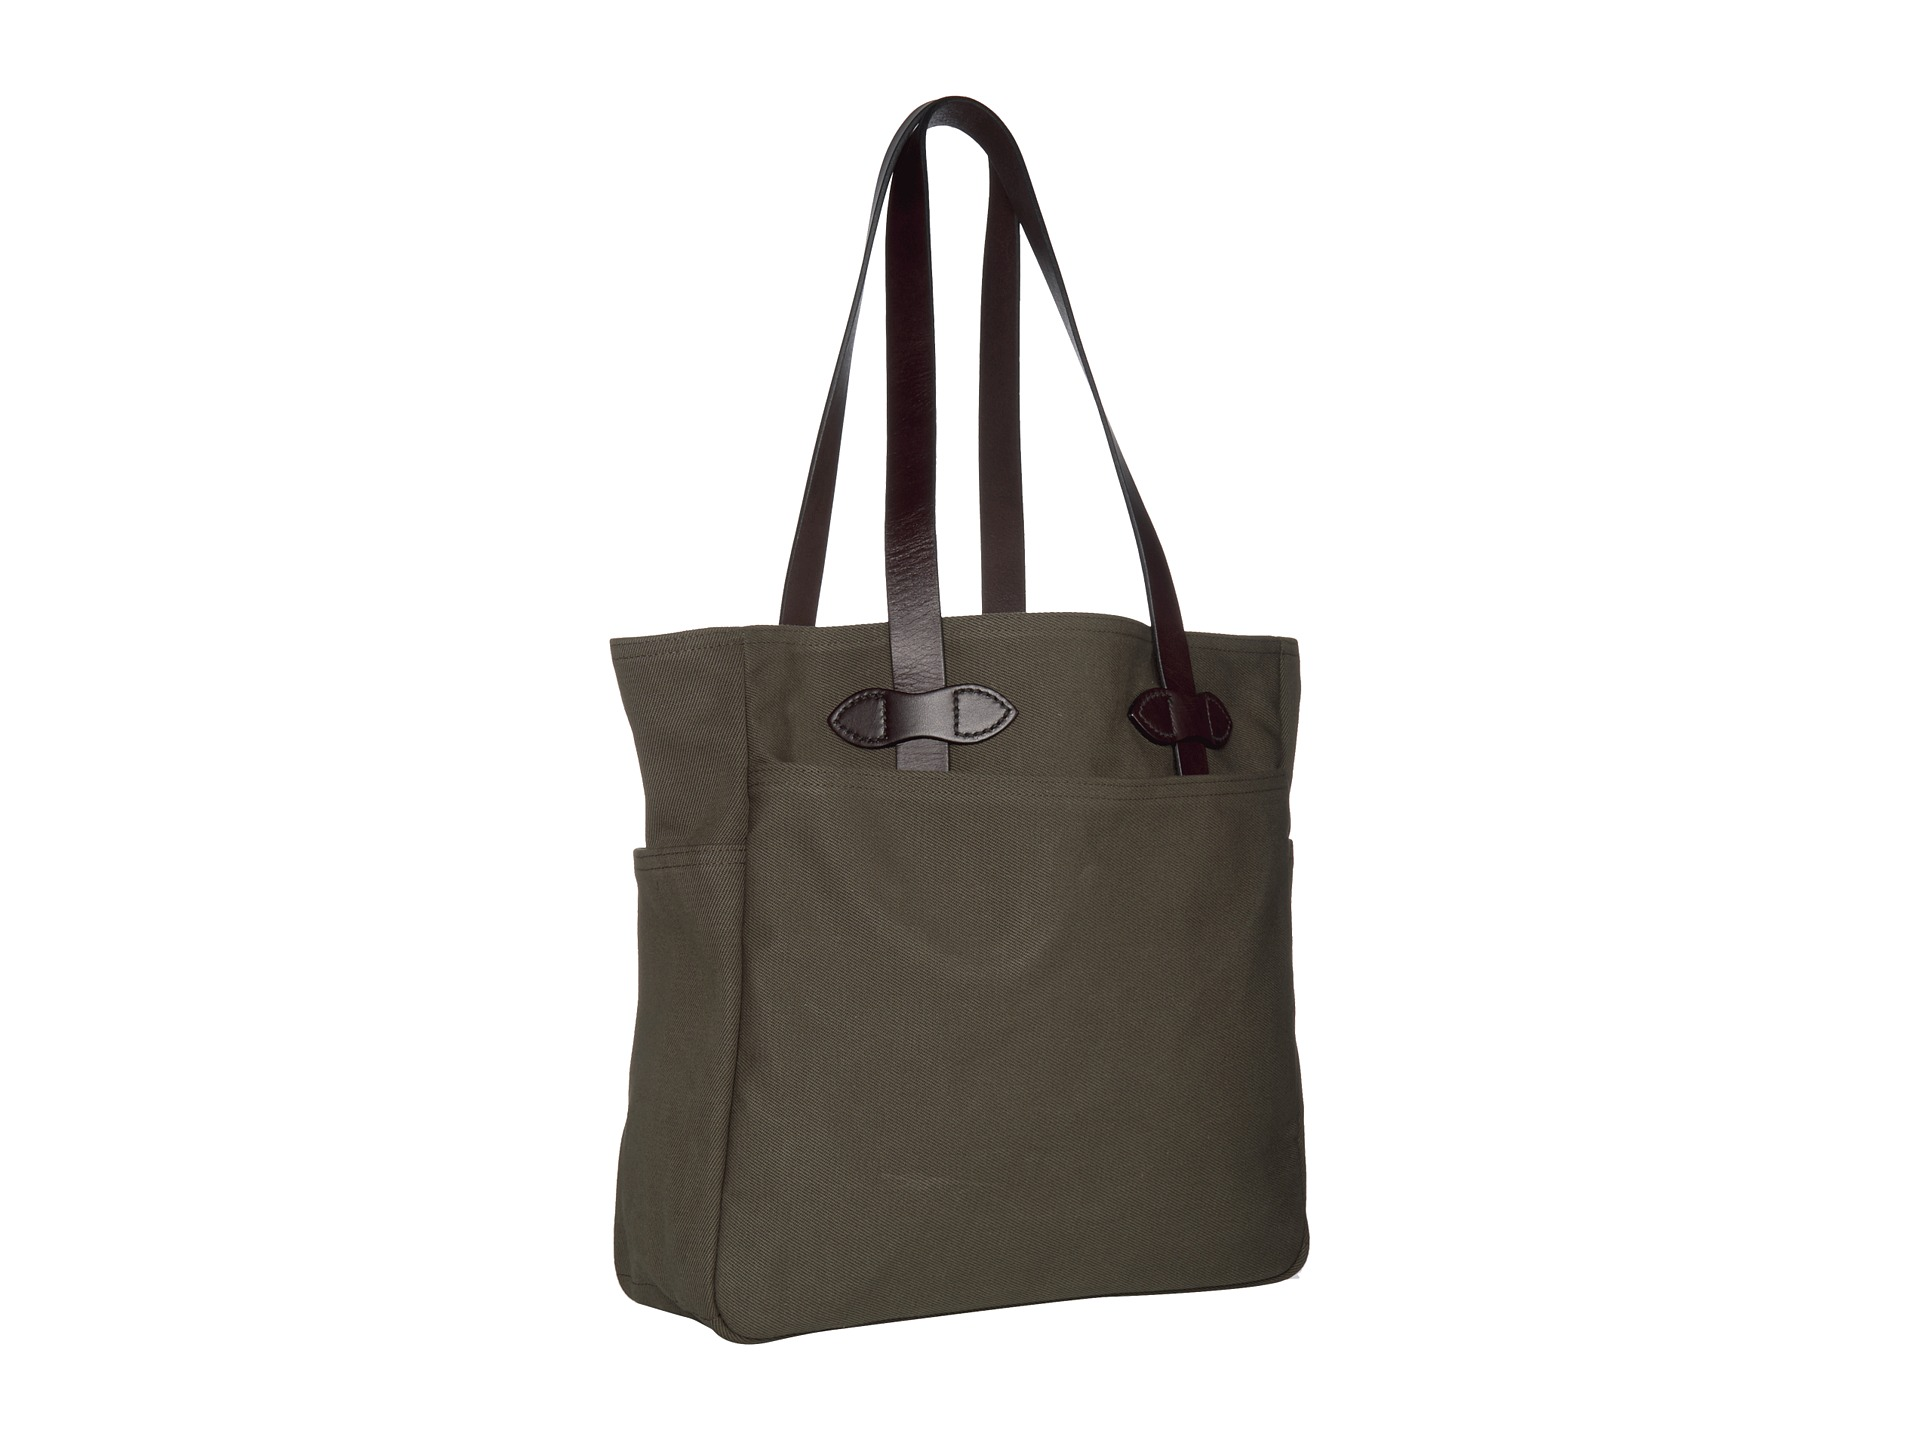 Filson Tote Bag W/Out Zipper at Zappos.com